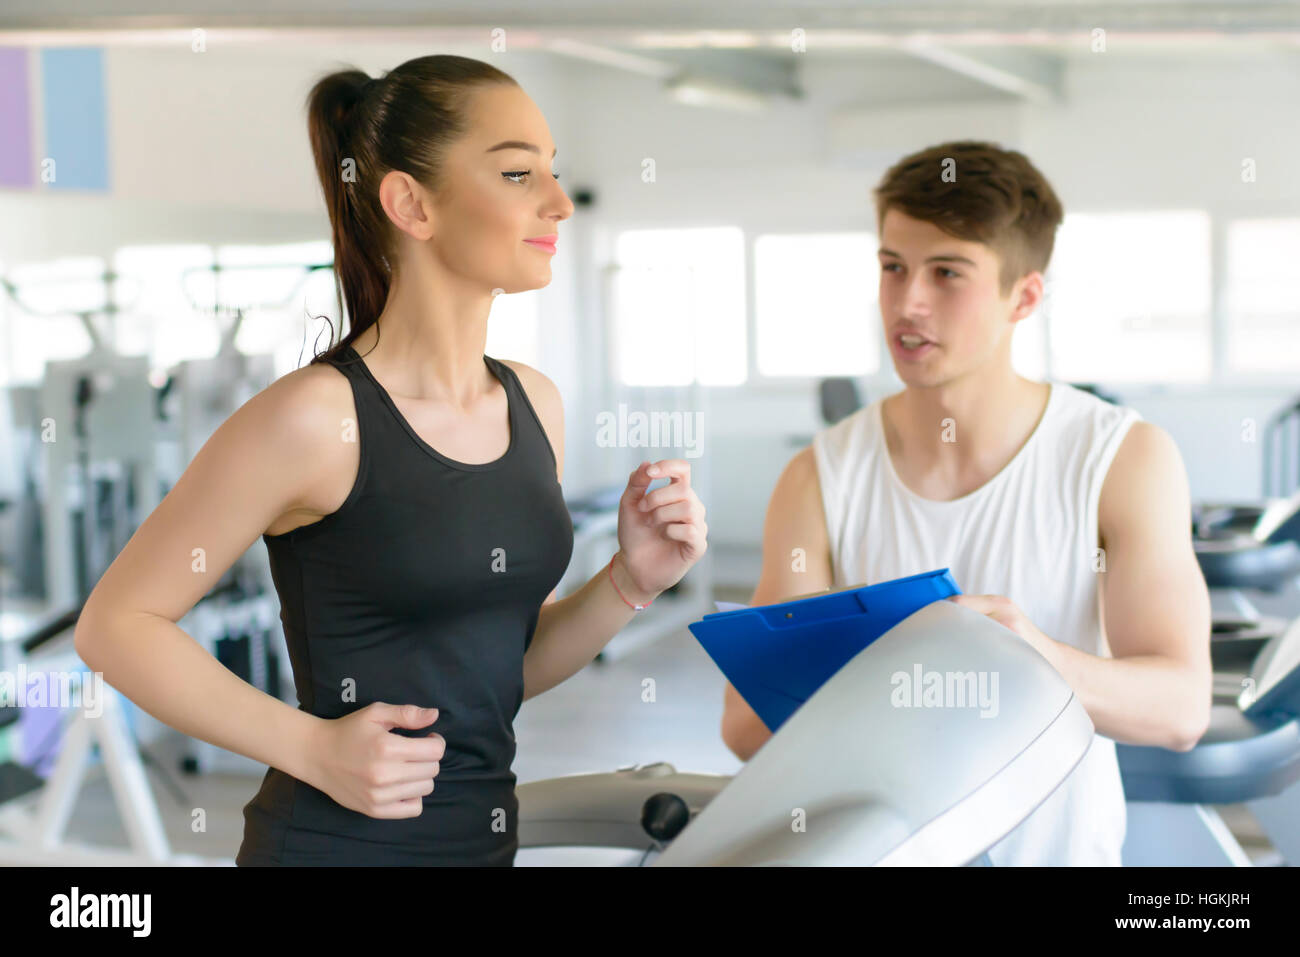 Woman running on treadmill at gym and being assisted by personal trainer - Stock Image